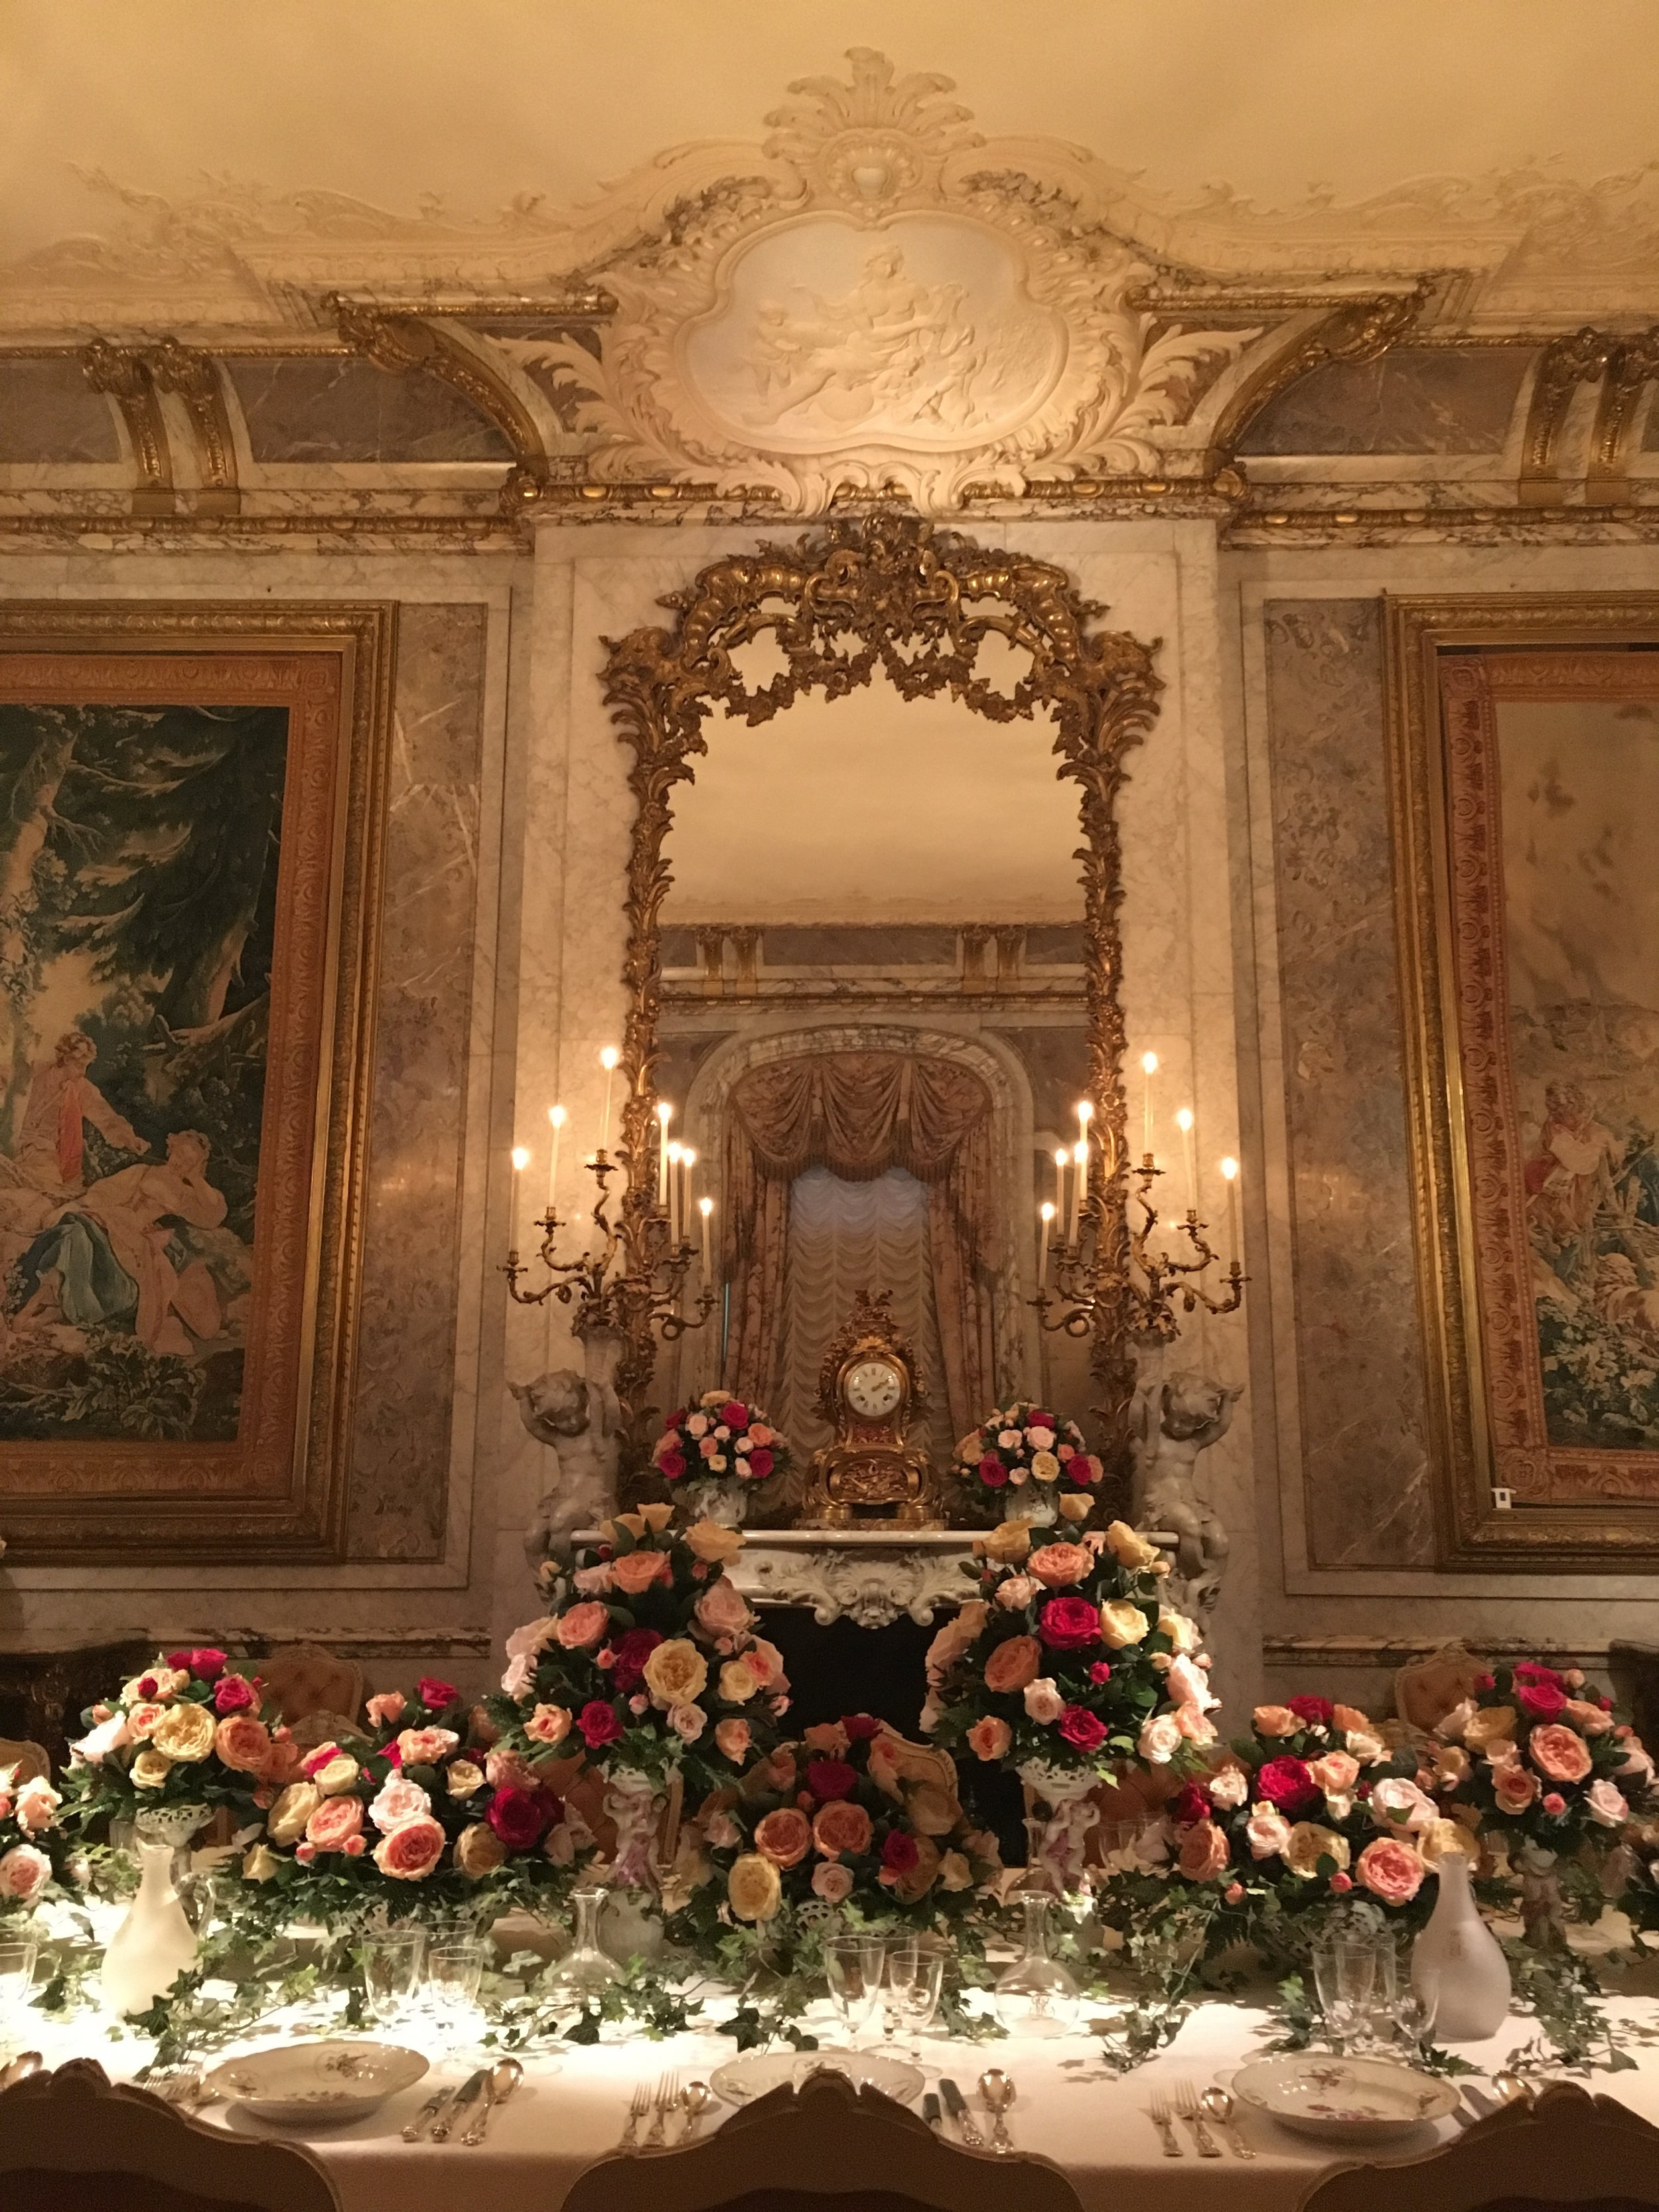 UK Waddesdon Manor dining room mirror National Trust French Chateau Rothschild Buckinghamshire garden chateau Eileen Hsieh Follow That Bug .jpg